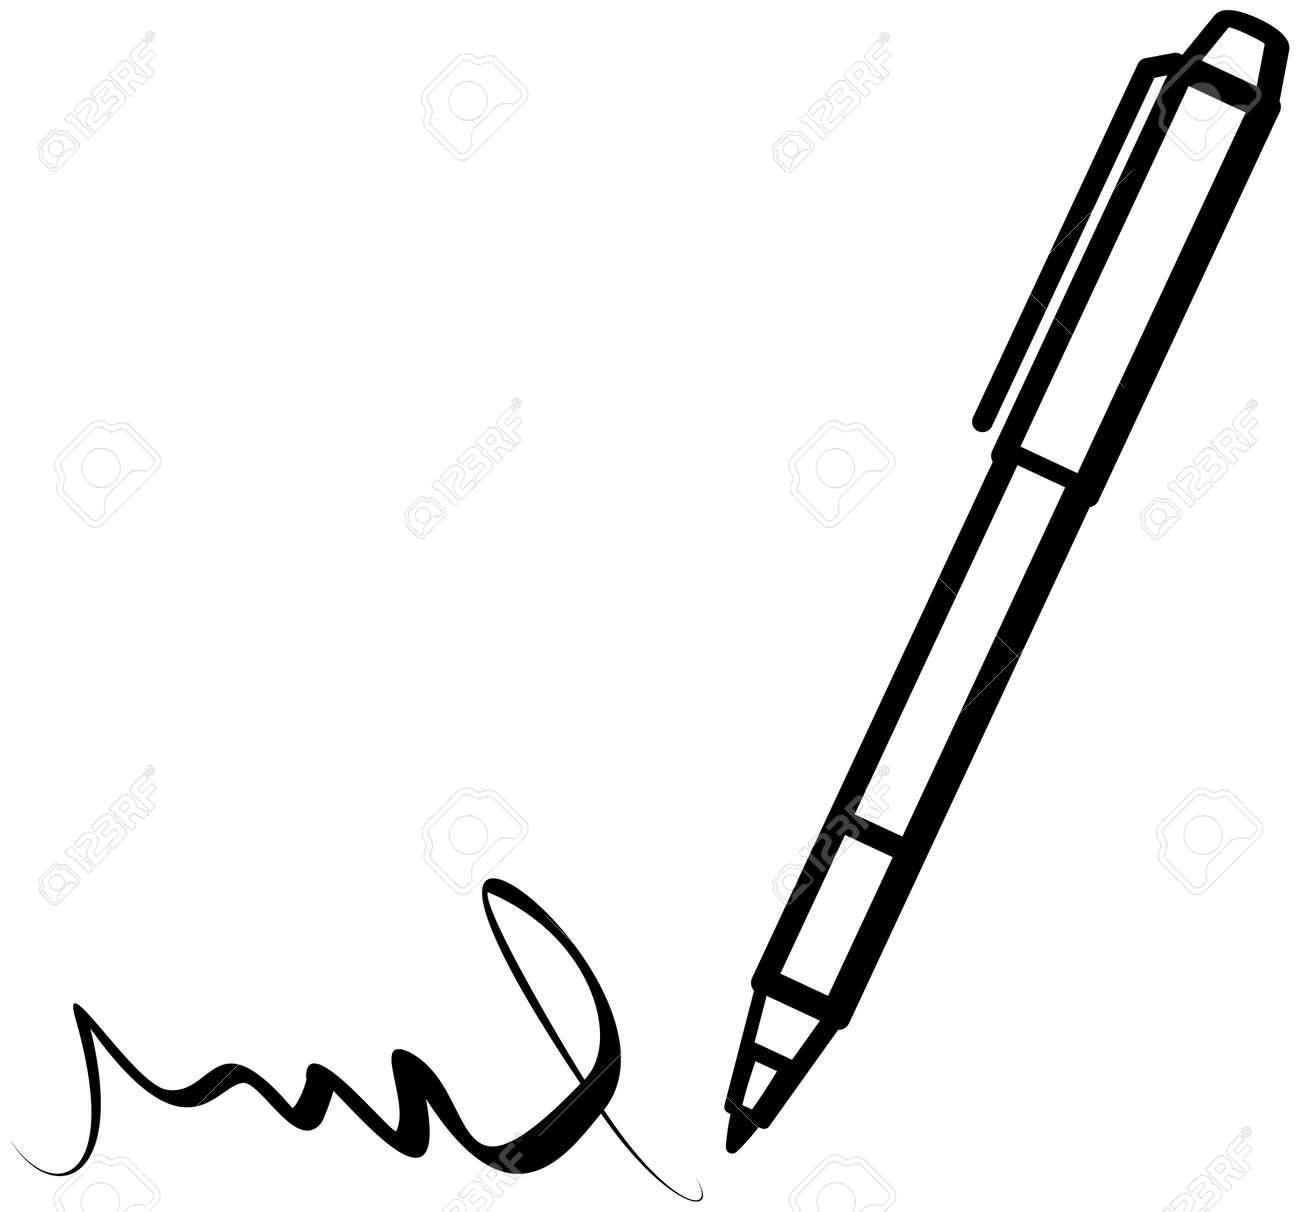 signature pen stock photos royalty free signature pen images and